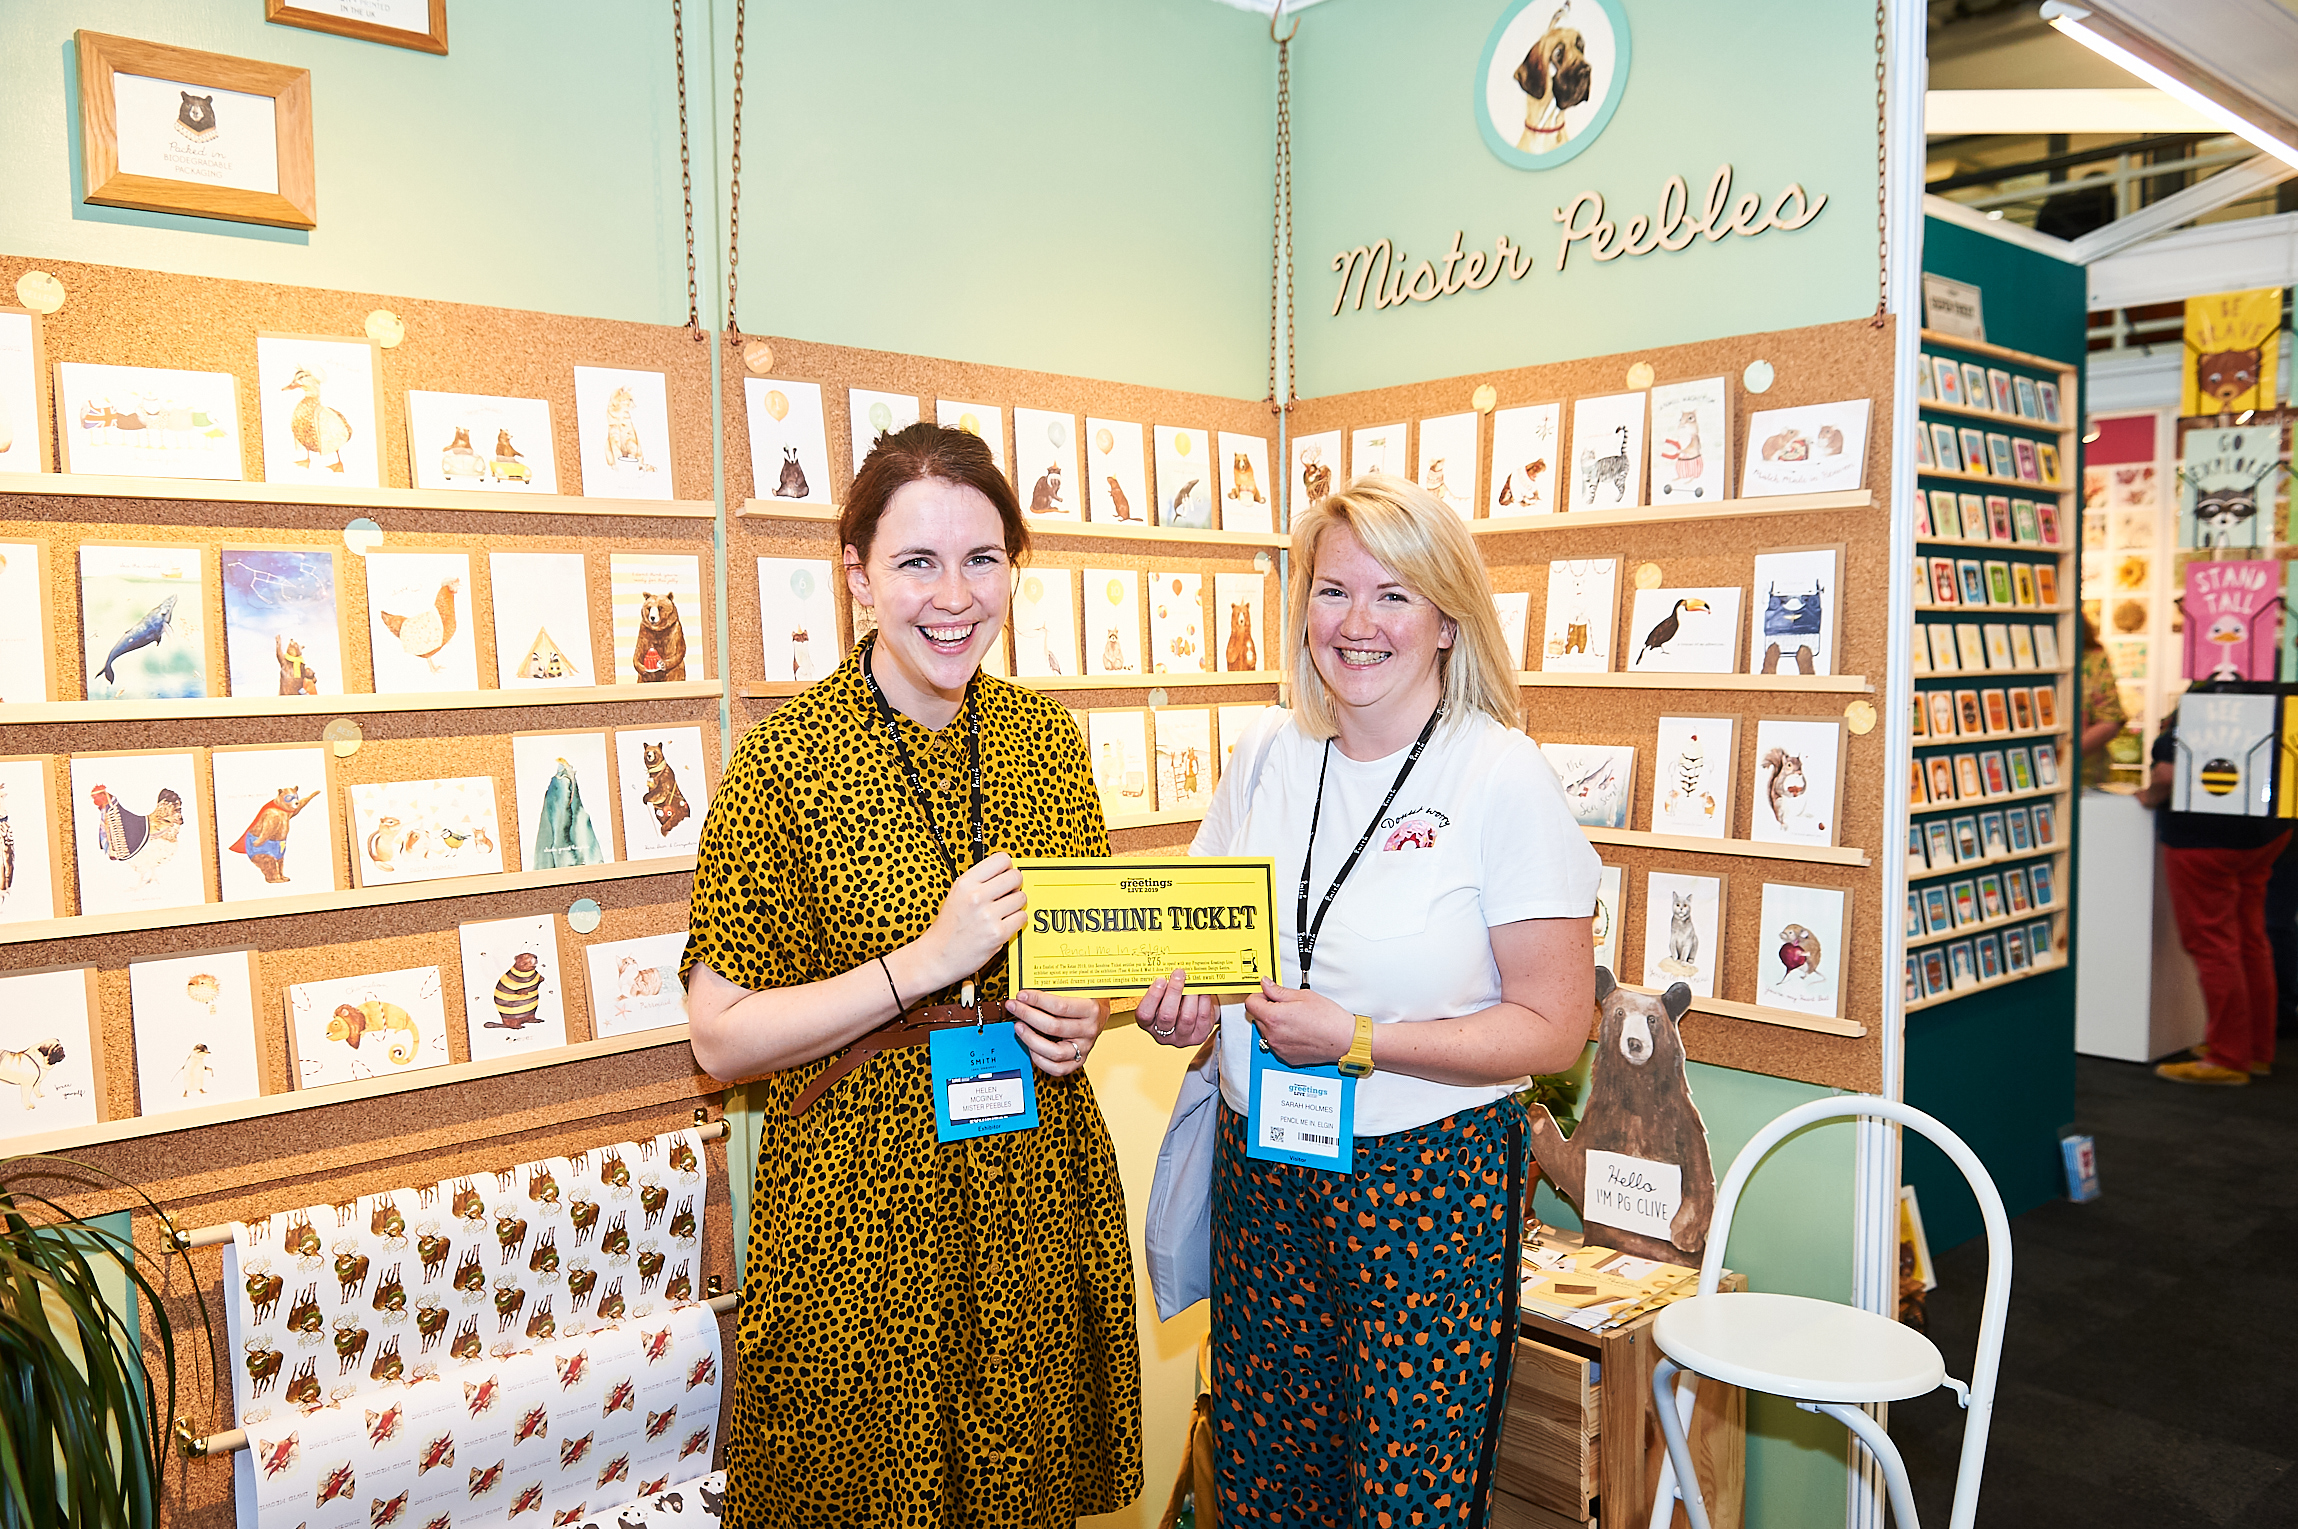 Above: Pencil Me In's Sarah Holmes (right) with Mister Peebles' Helen McGinley on the publisher's stand at PG Live.